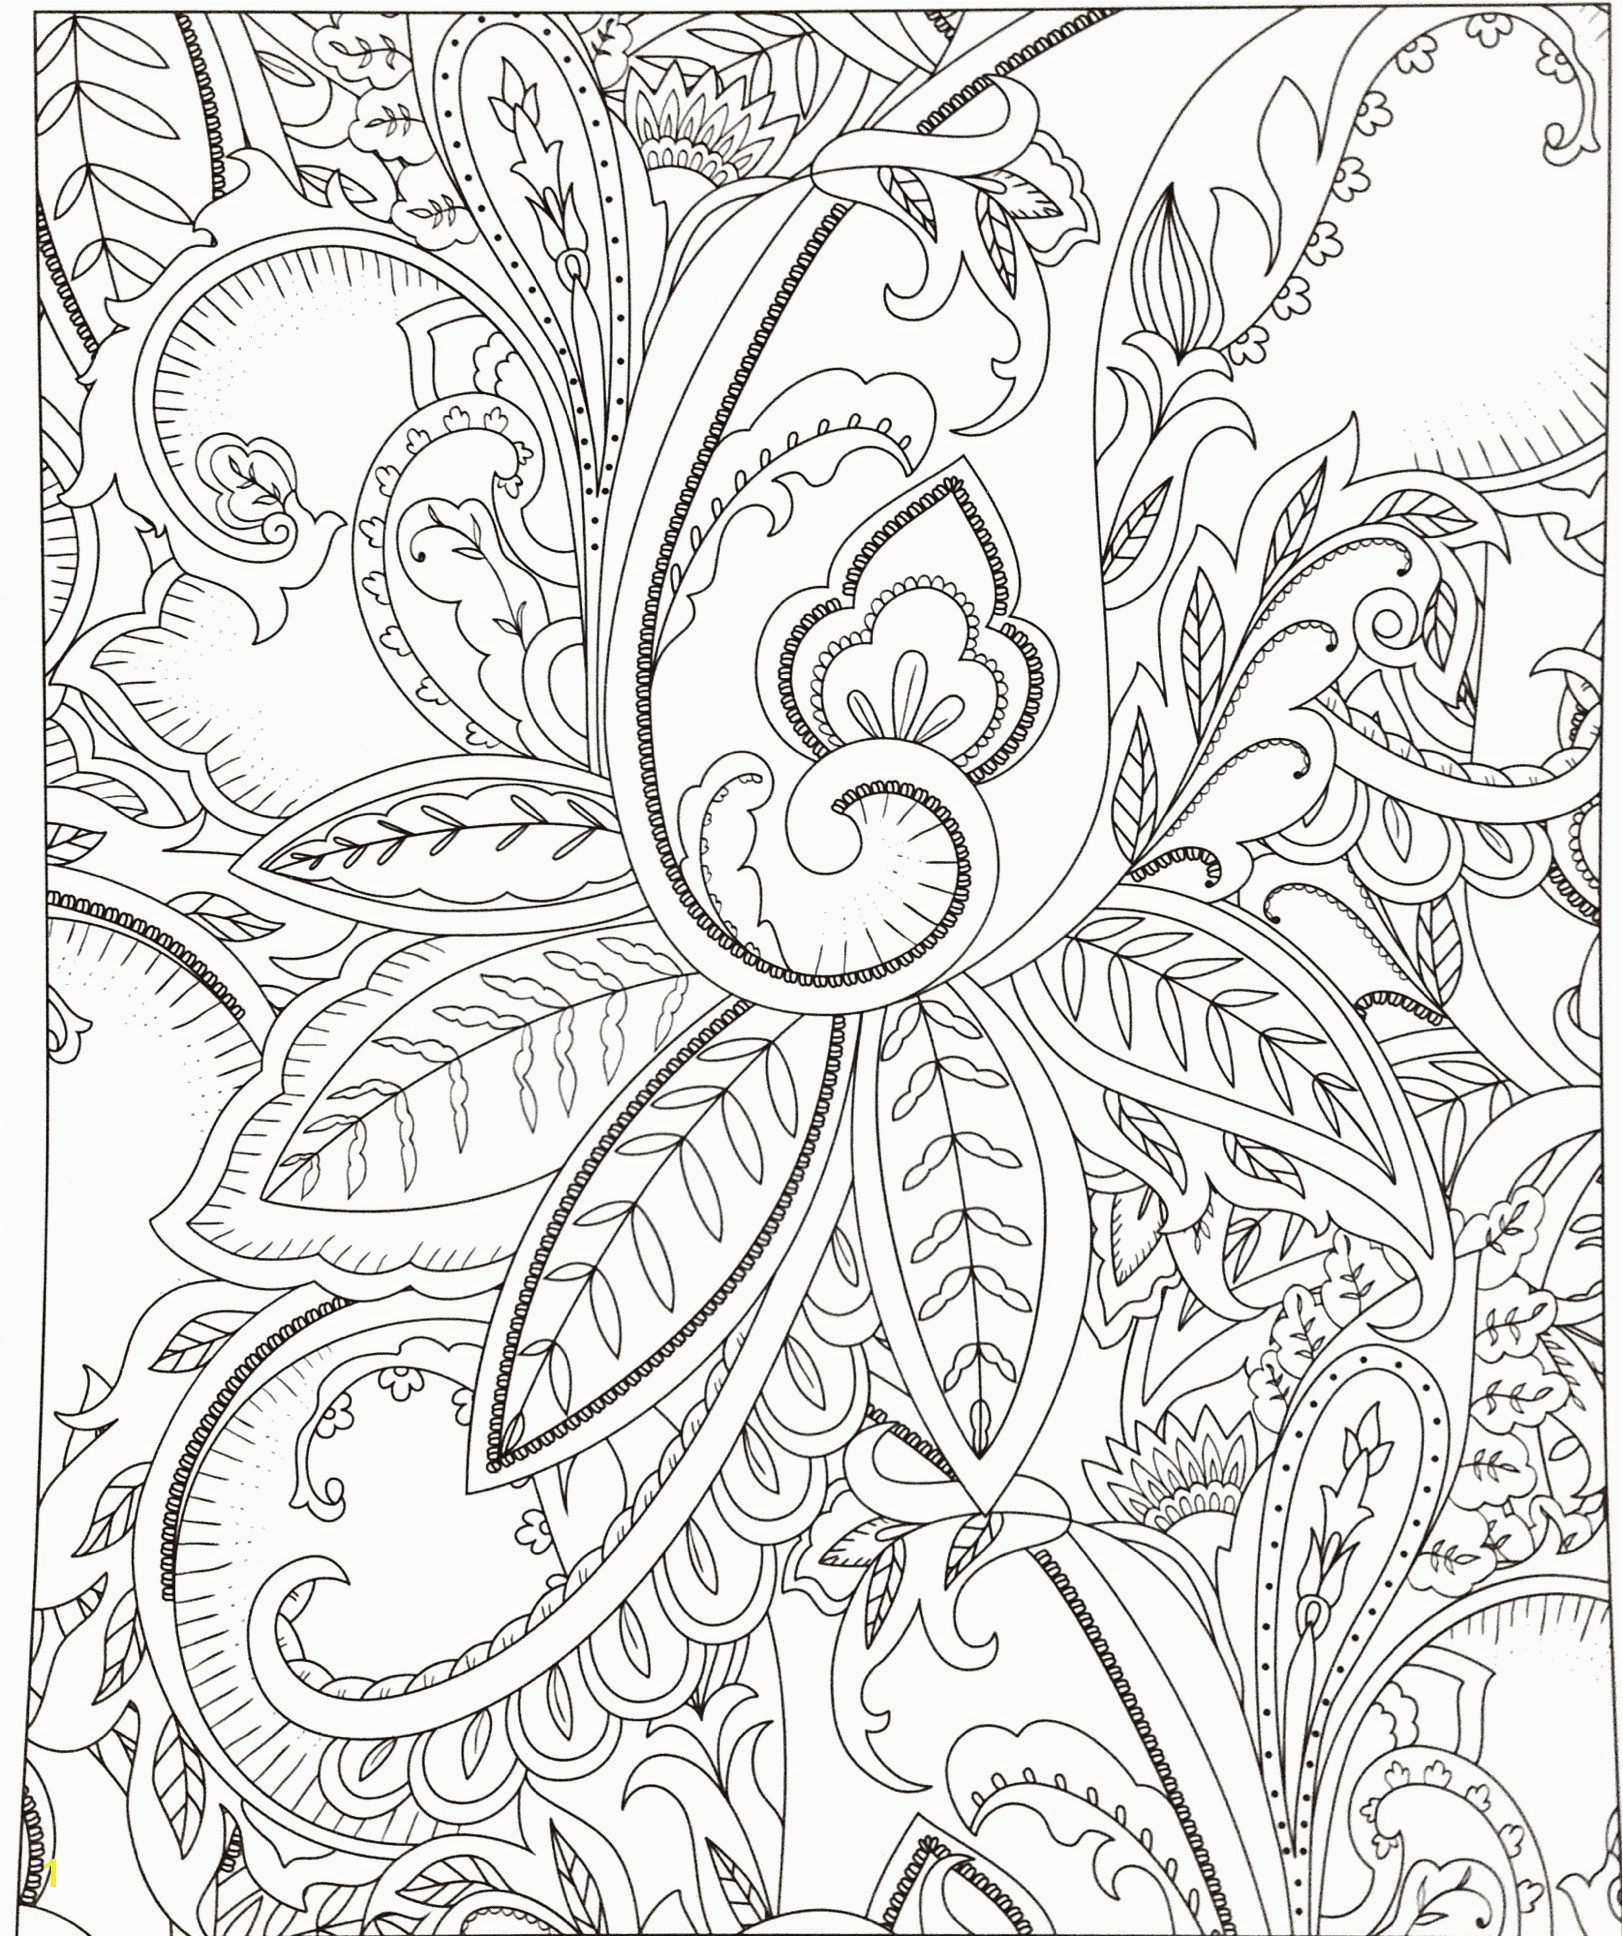 Detailed Coloring Pages Fresh Fresh S S Media Cache Ak0 Pinimg originals 0d B4 2c Free Gallery